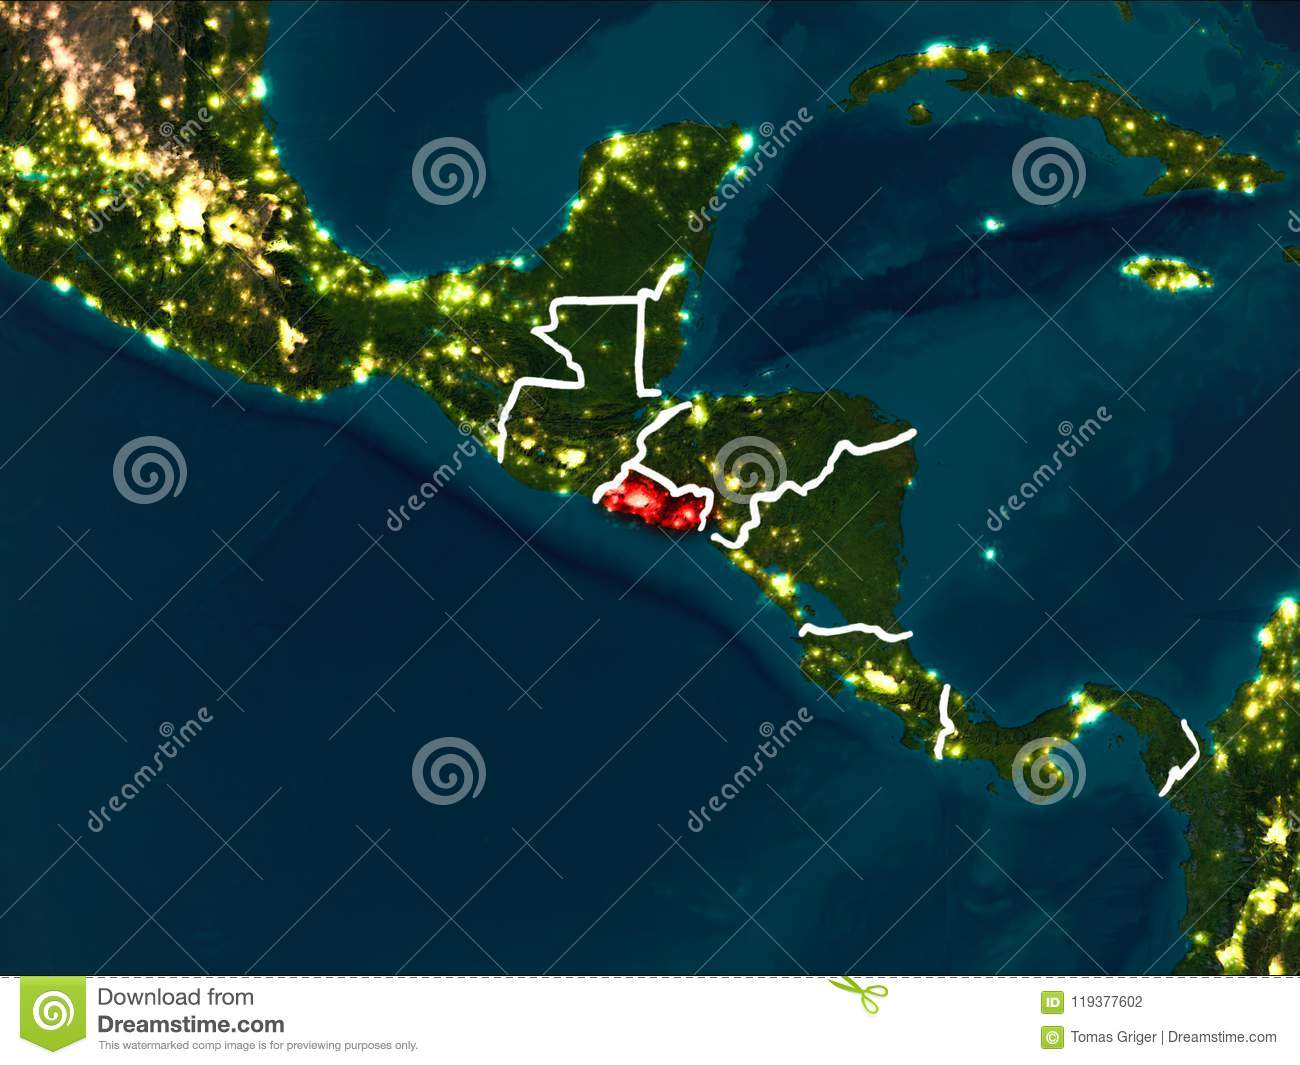 Map Of El Salvador At Night Stock Illustration ... Satellite Image Photo Of El Salvador on new zealand satellite, venezuela satellite, vietnam satellite, spain satellite, argentina satellite, barbados satellite, honduras satellite, india satellite, georgia satellite, brazil satellite, cuba satellite, puerto rico satellite, fertile crescent satellite, israel satellite, madagascar satellite, italy satellite, north korea south korea satellite, japan satellite, yucatán peninsula satellite, latin america satellite,